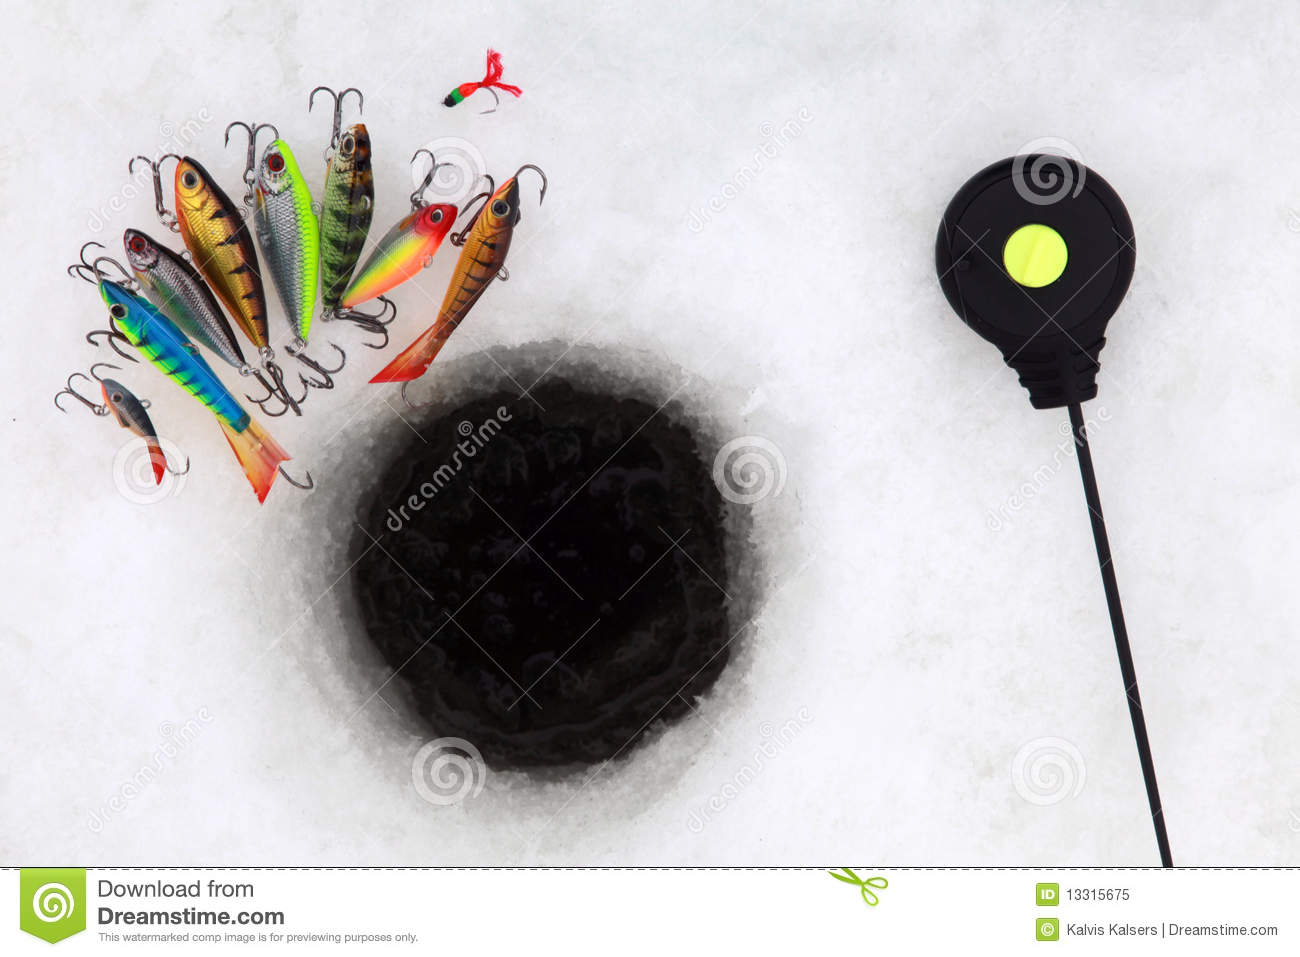 Ice fishing tools royalty free stock photo image 13315675 for Ice fishing tools